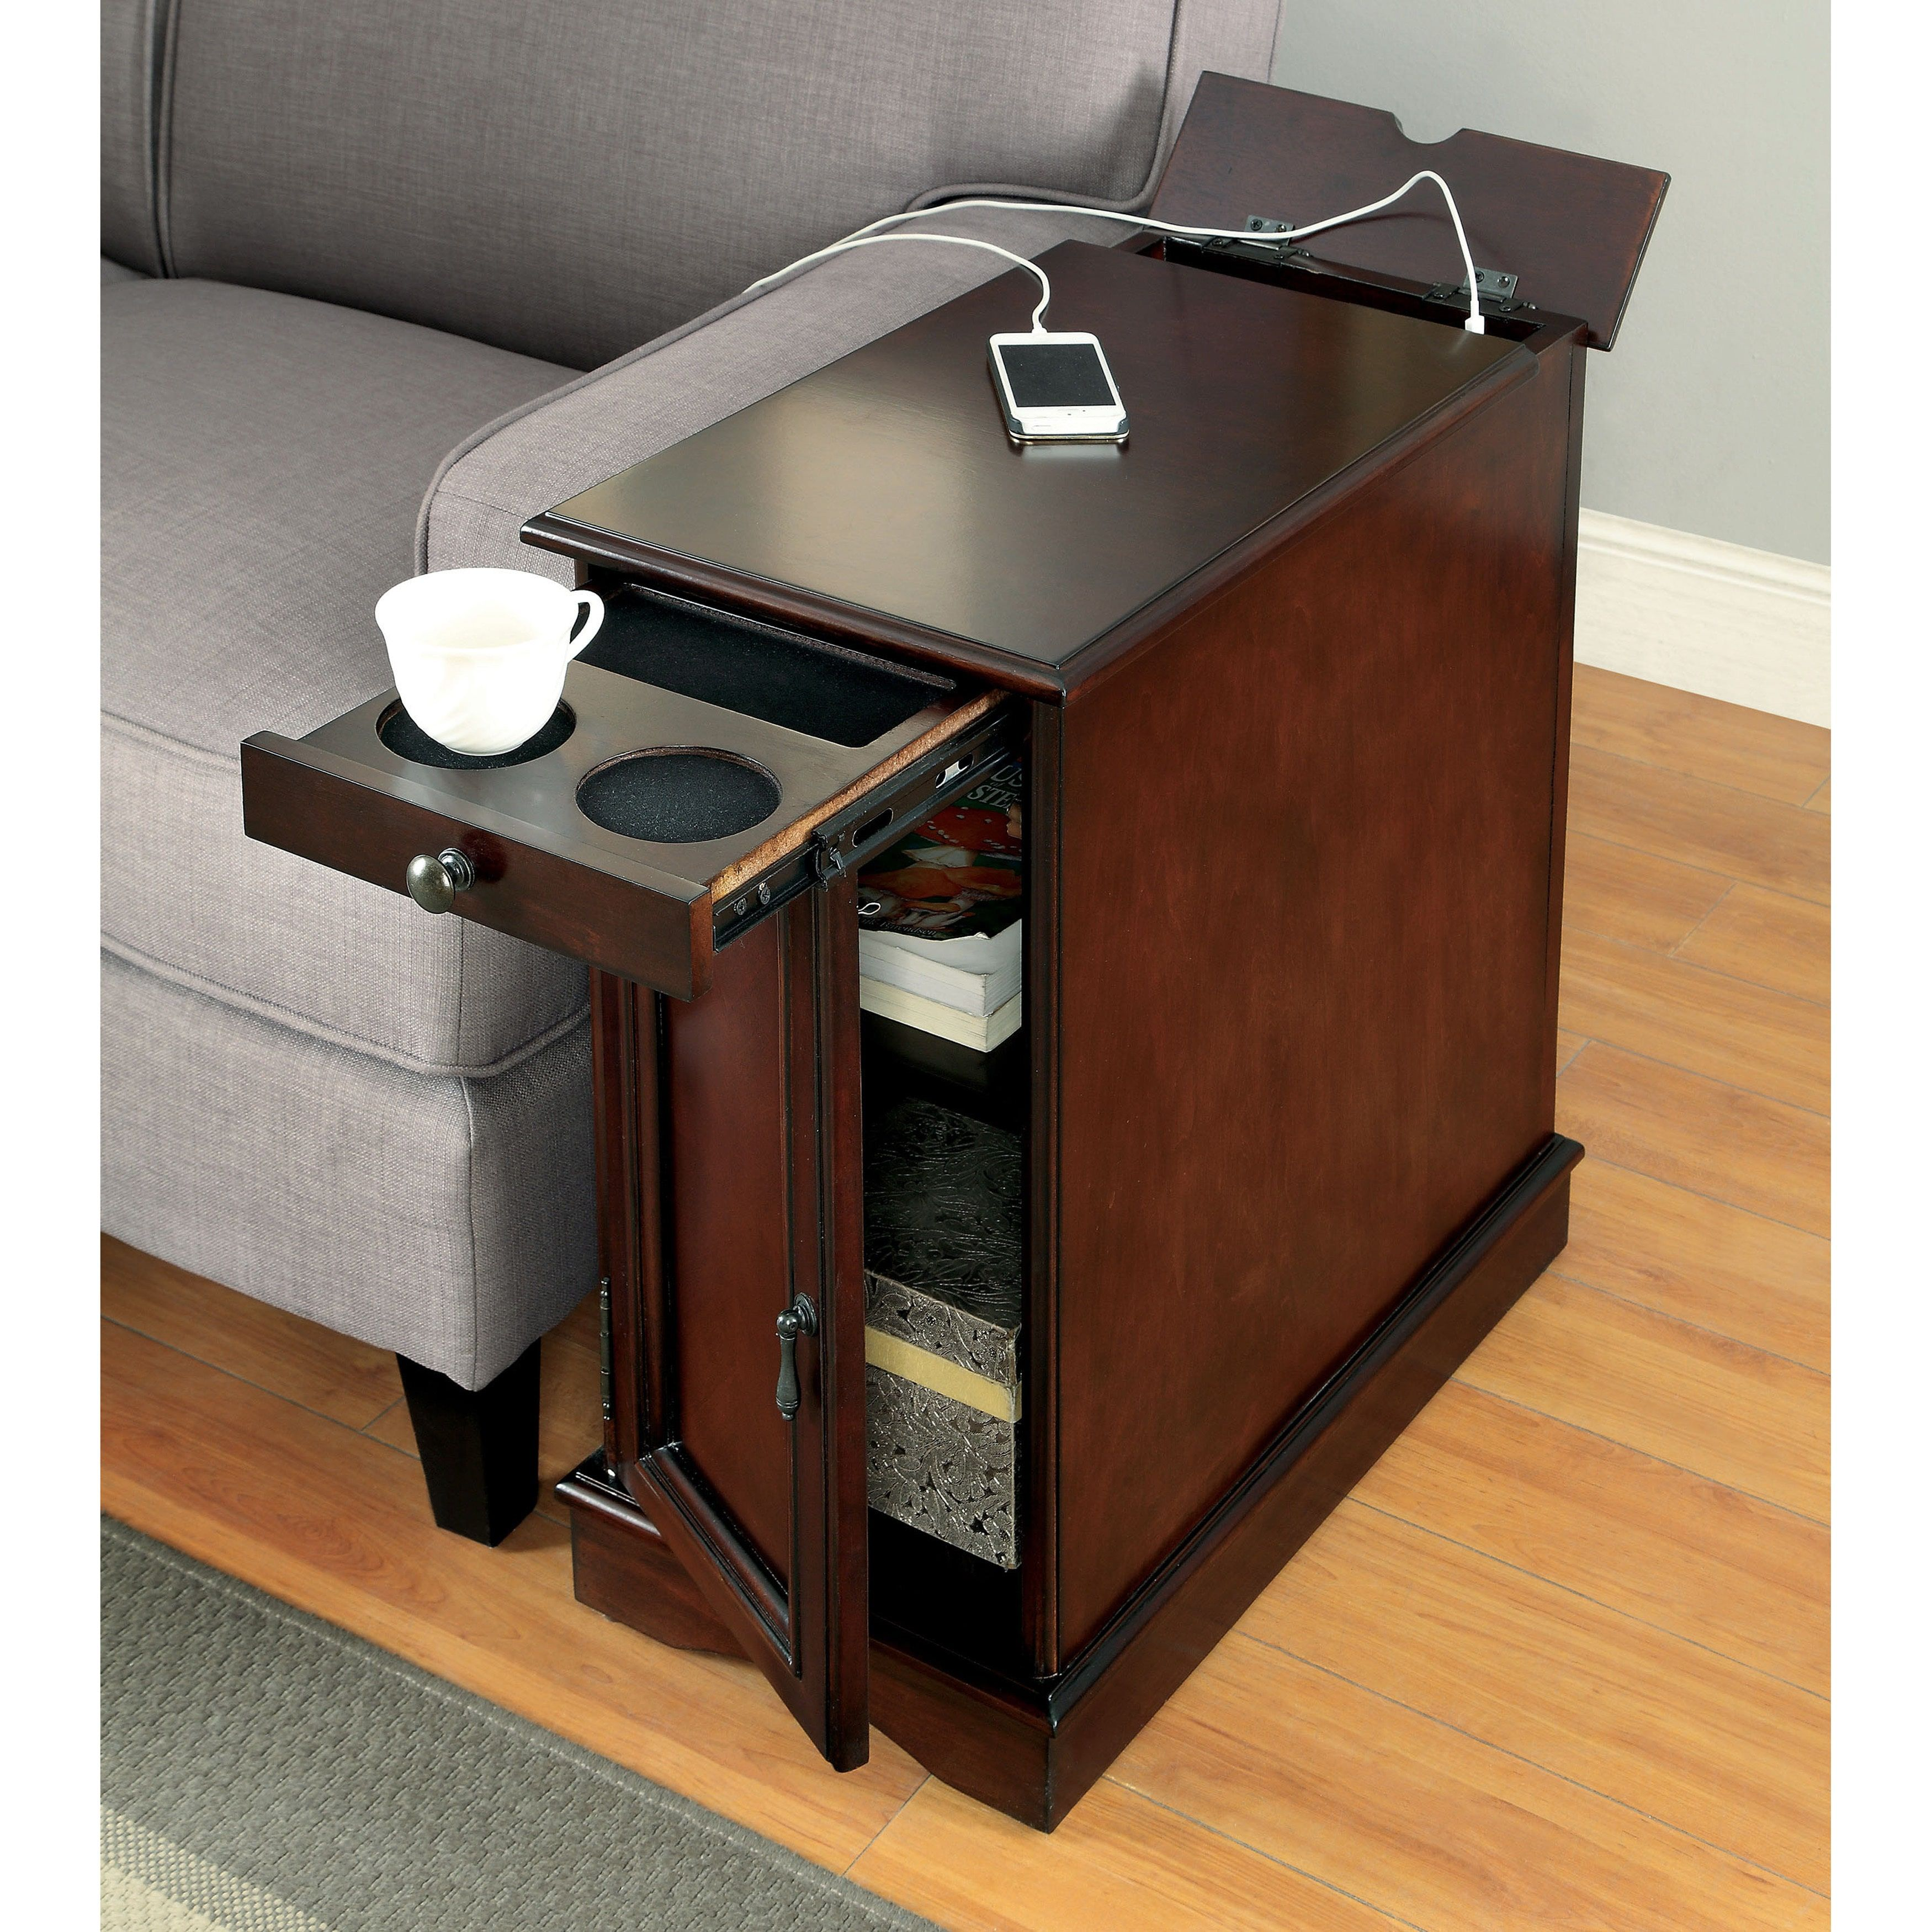 Discount Furniture Stores Online Free Shipping: Furniture Of America Terra Multi-storage Side Table With